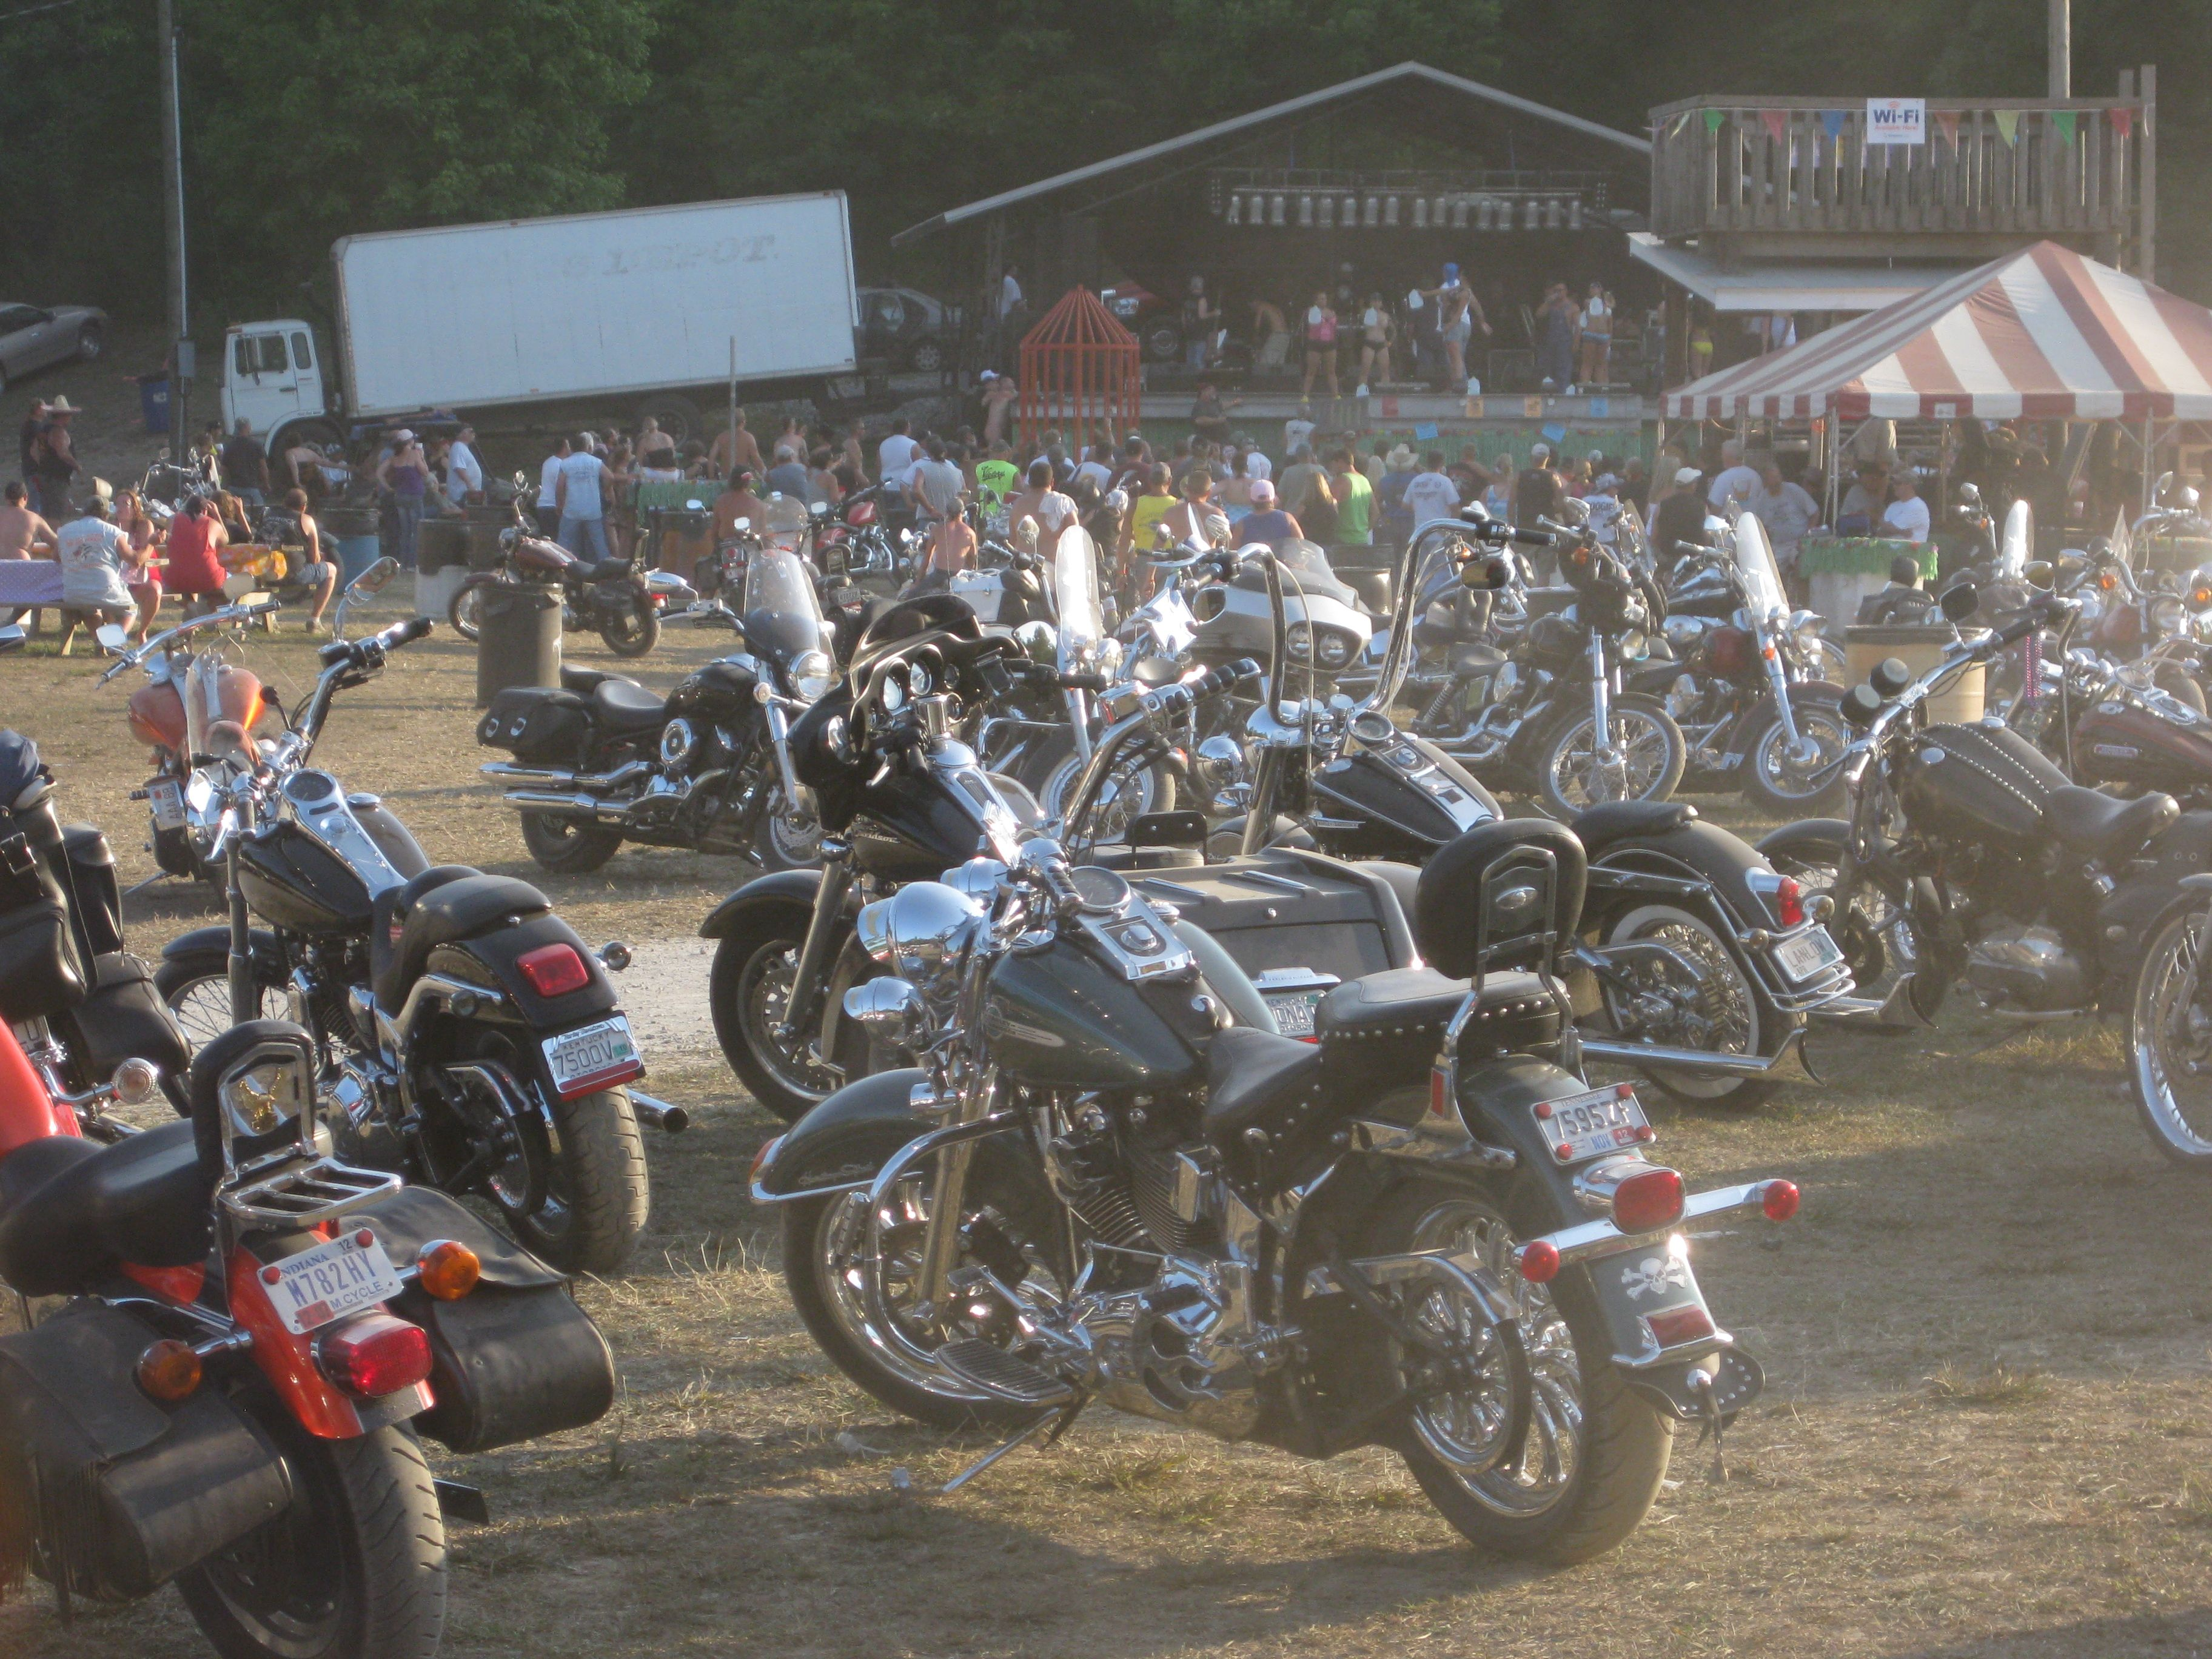 Pictures of sturgis motorcycle rally Sturgis Raw Photos - Travel Channel